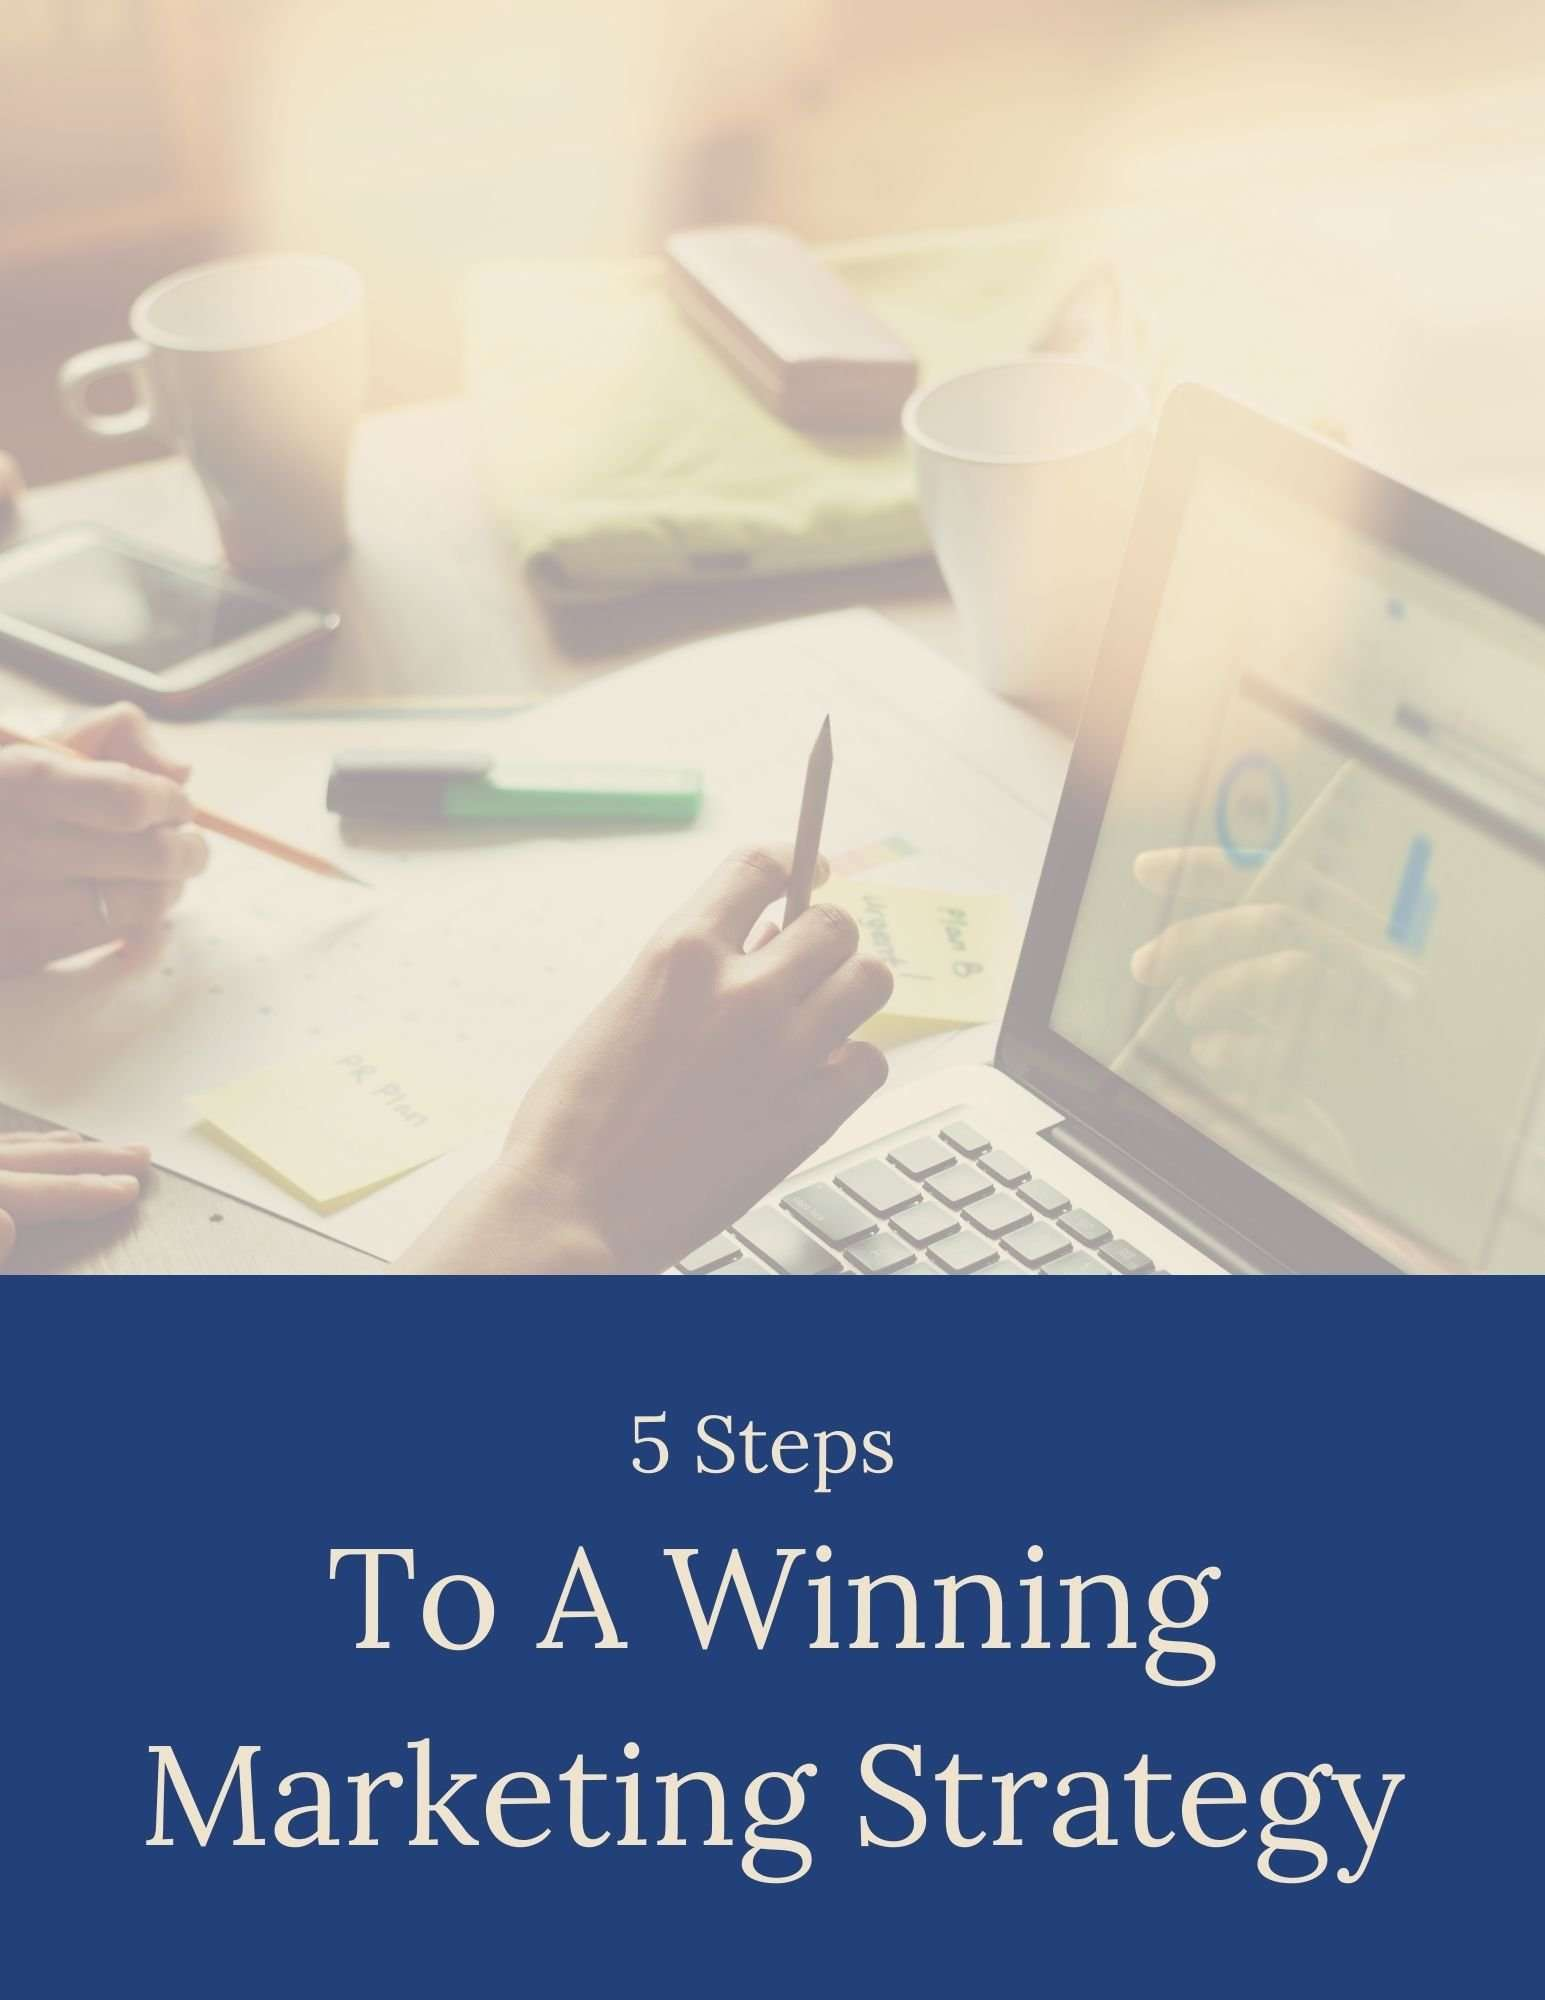 5 Steps To A Winning Marketing Strategy